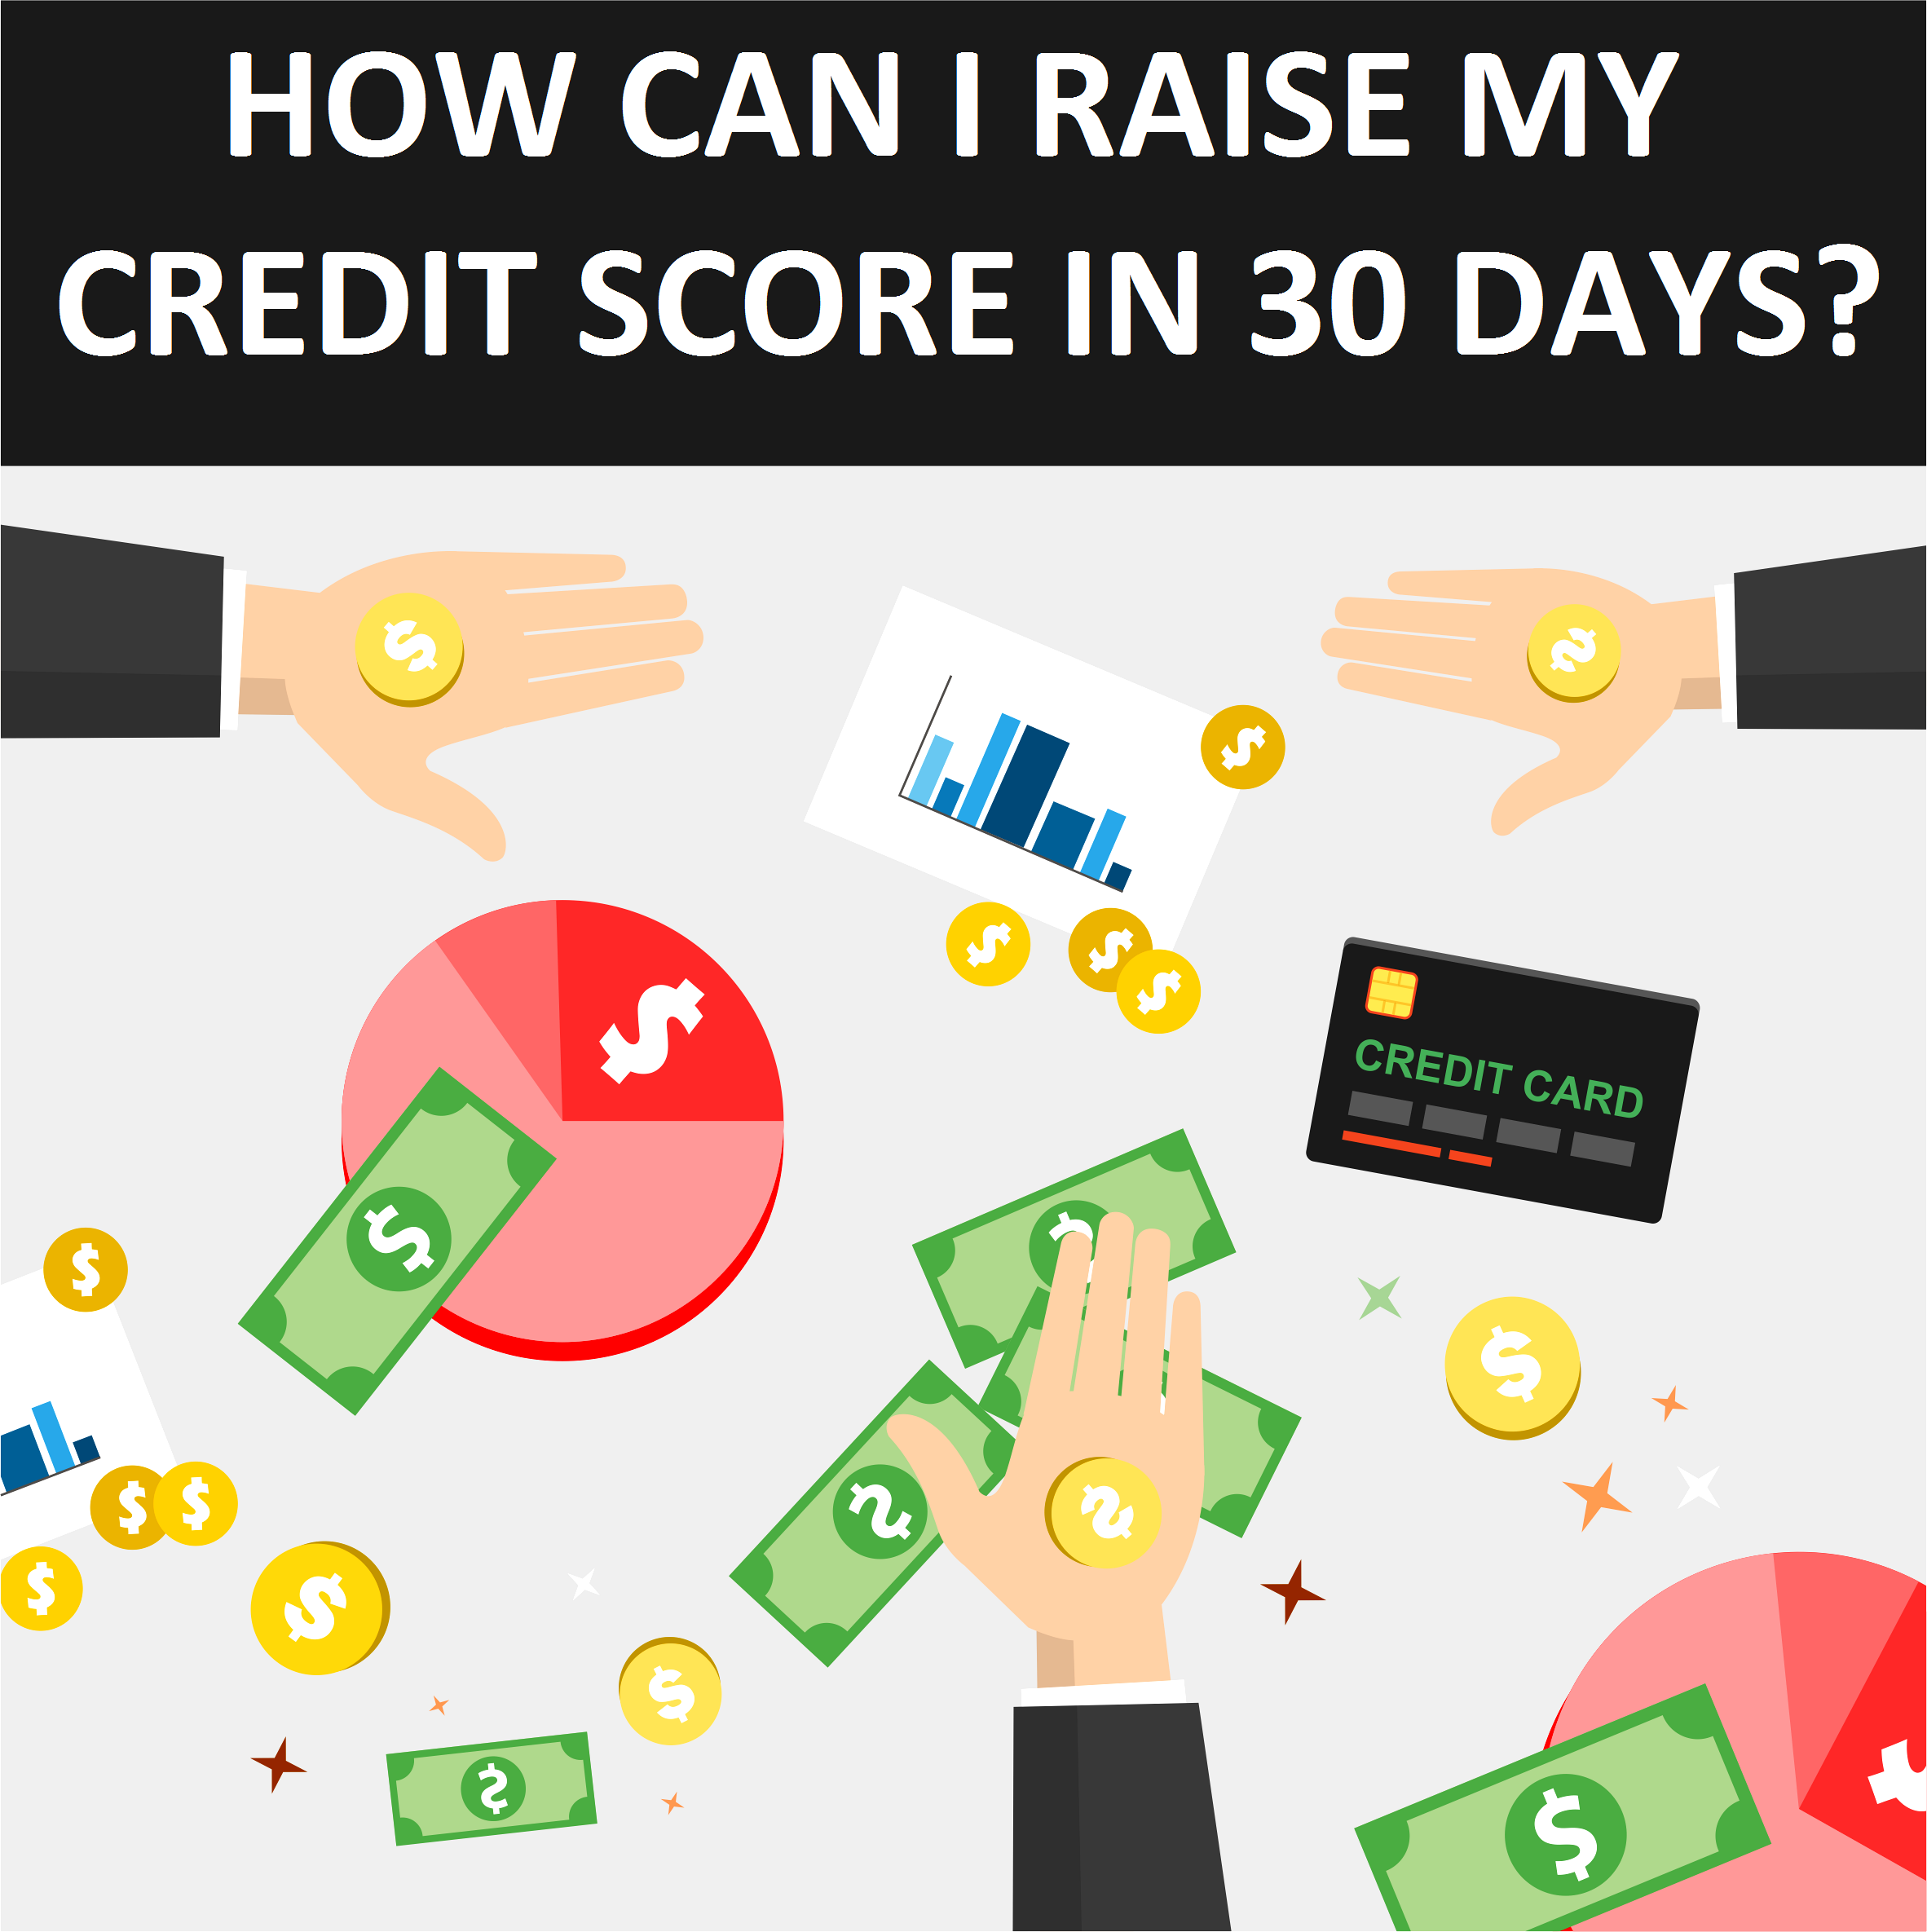 How Can I Raise My Credit Score In 30 Days?